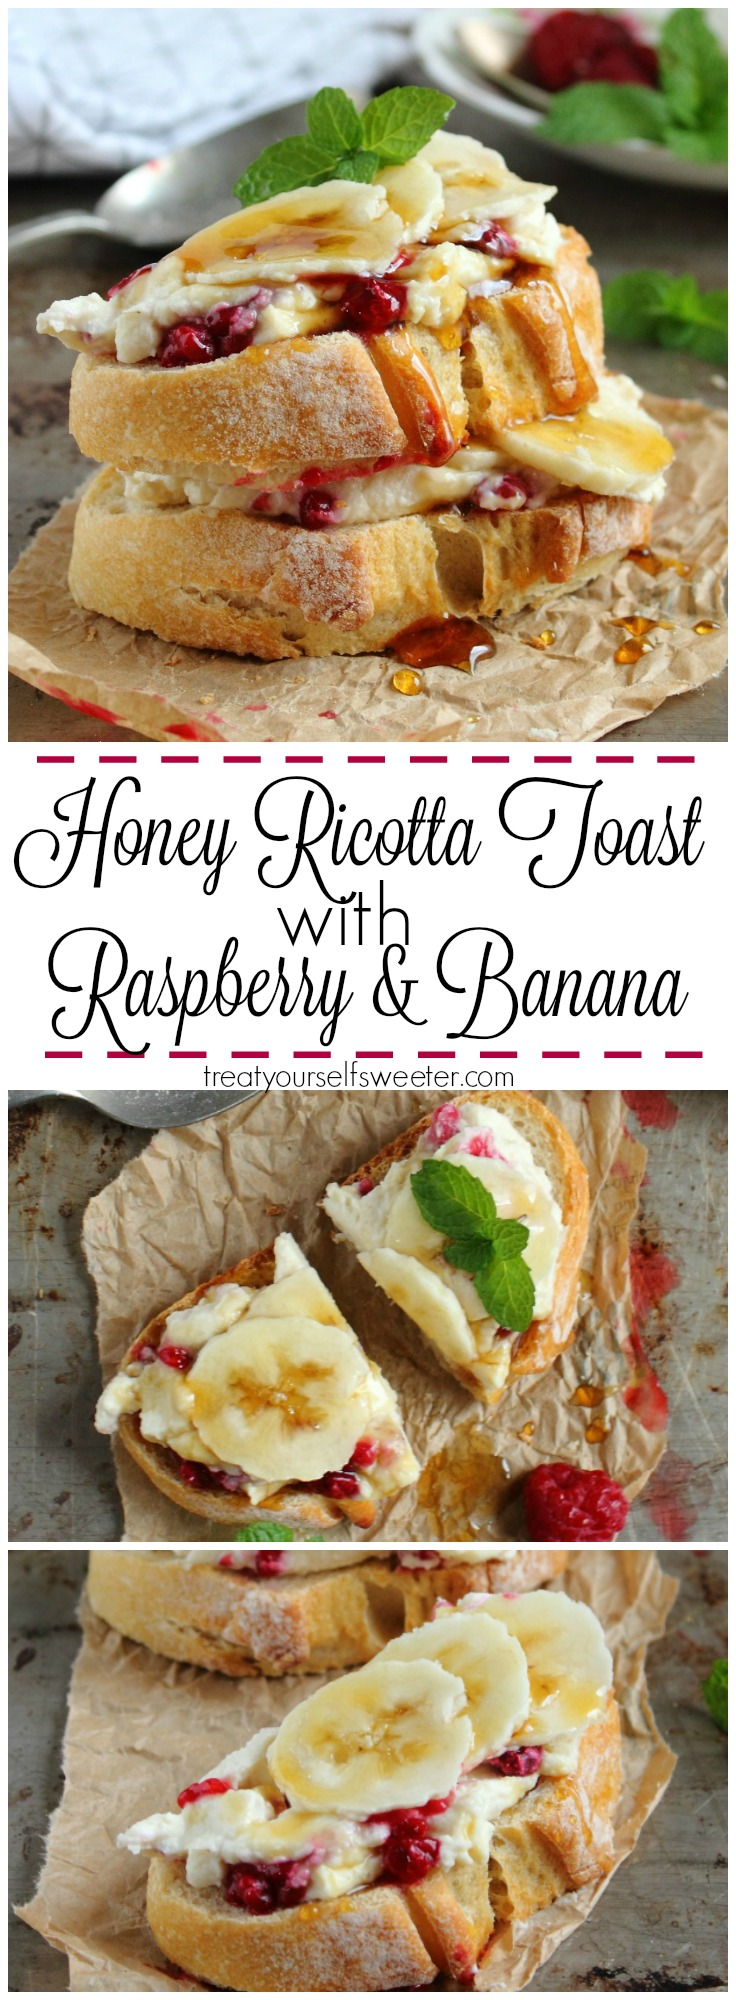 Honey Ricotta Toast with Raspberries and Banana; crunchy toast smothered with creamy, sweet honey ricotta, raspberries and banana. Quick, easy & perfect for brunch!